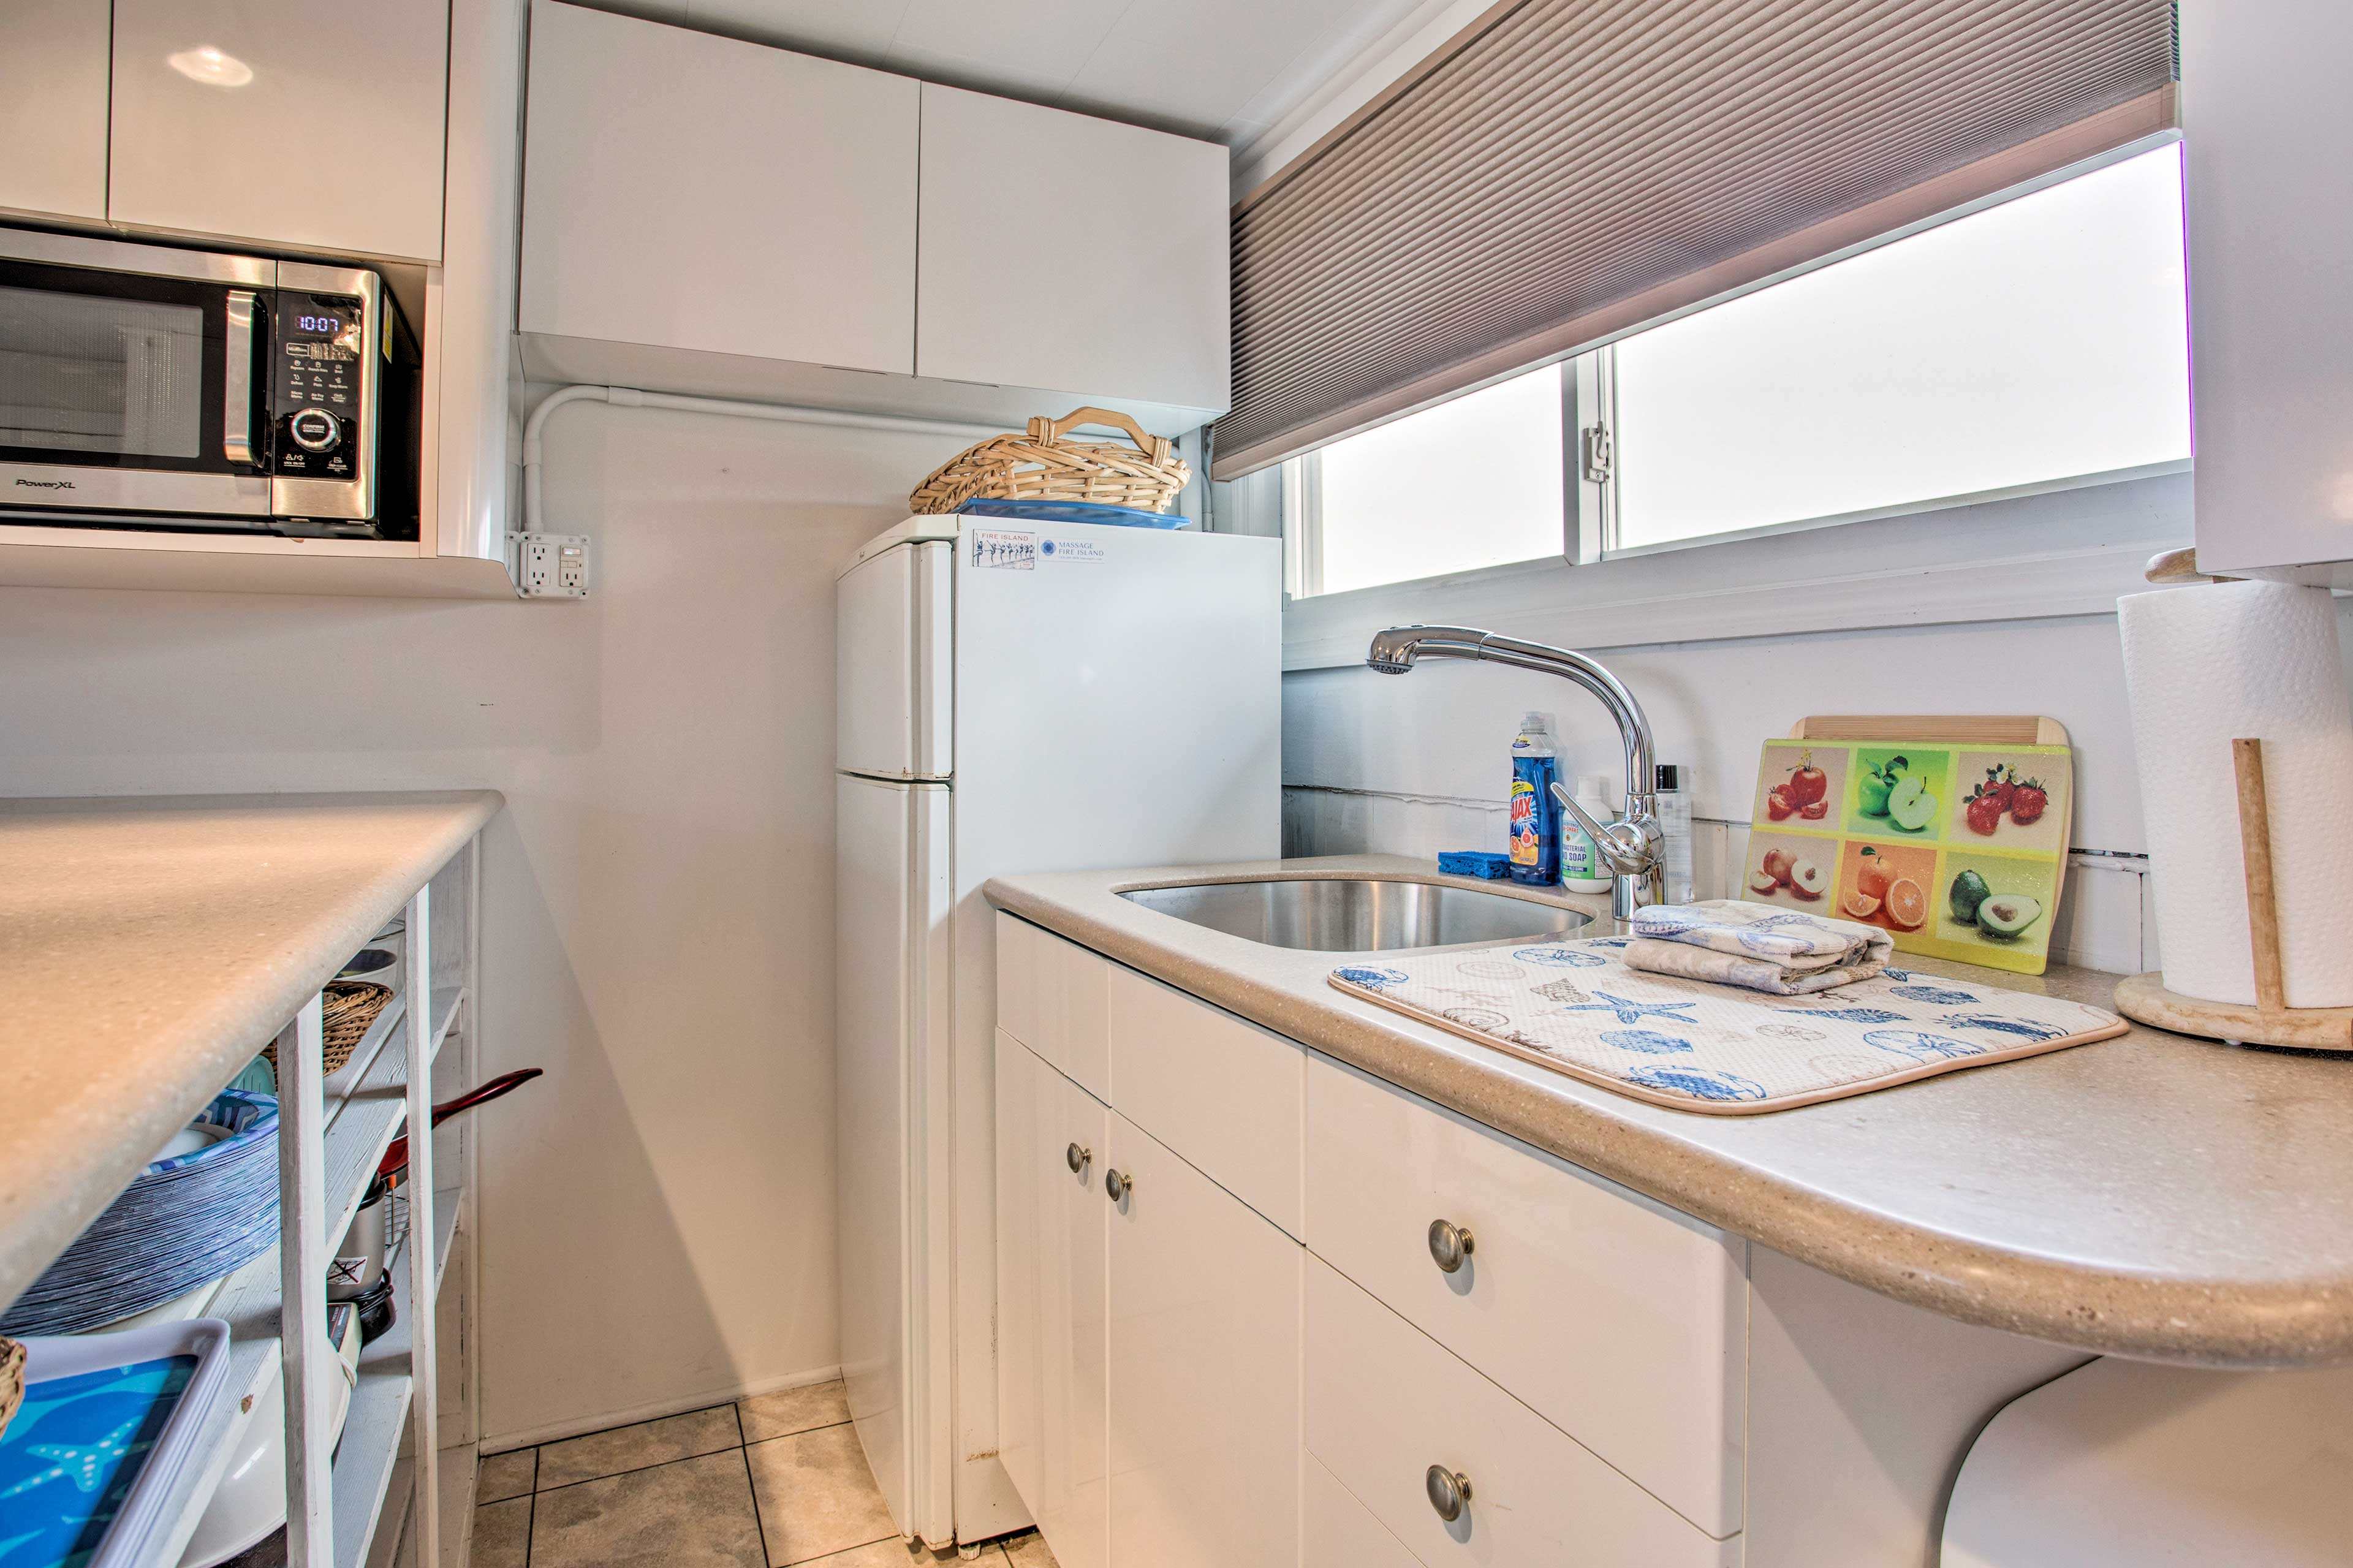 Meal time is a breeze in this well-equipped kitchen.